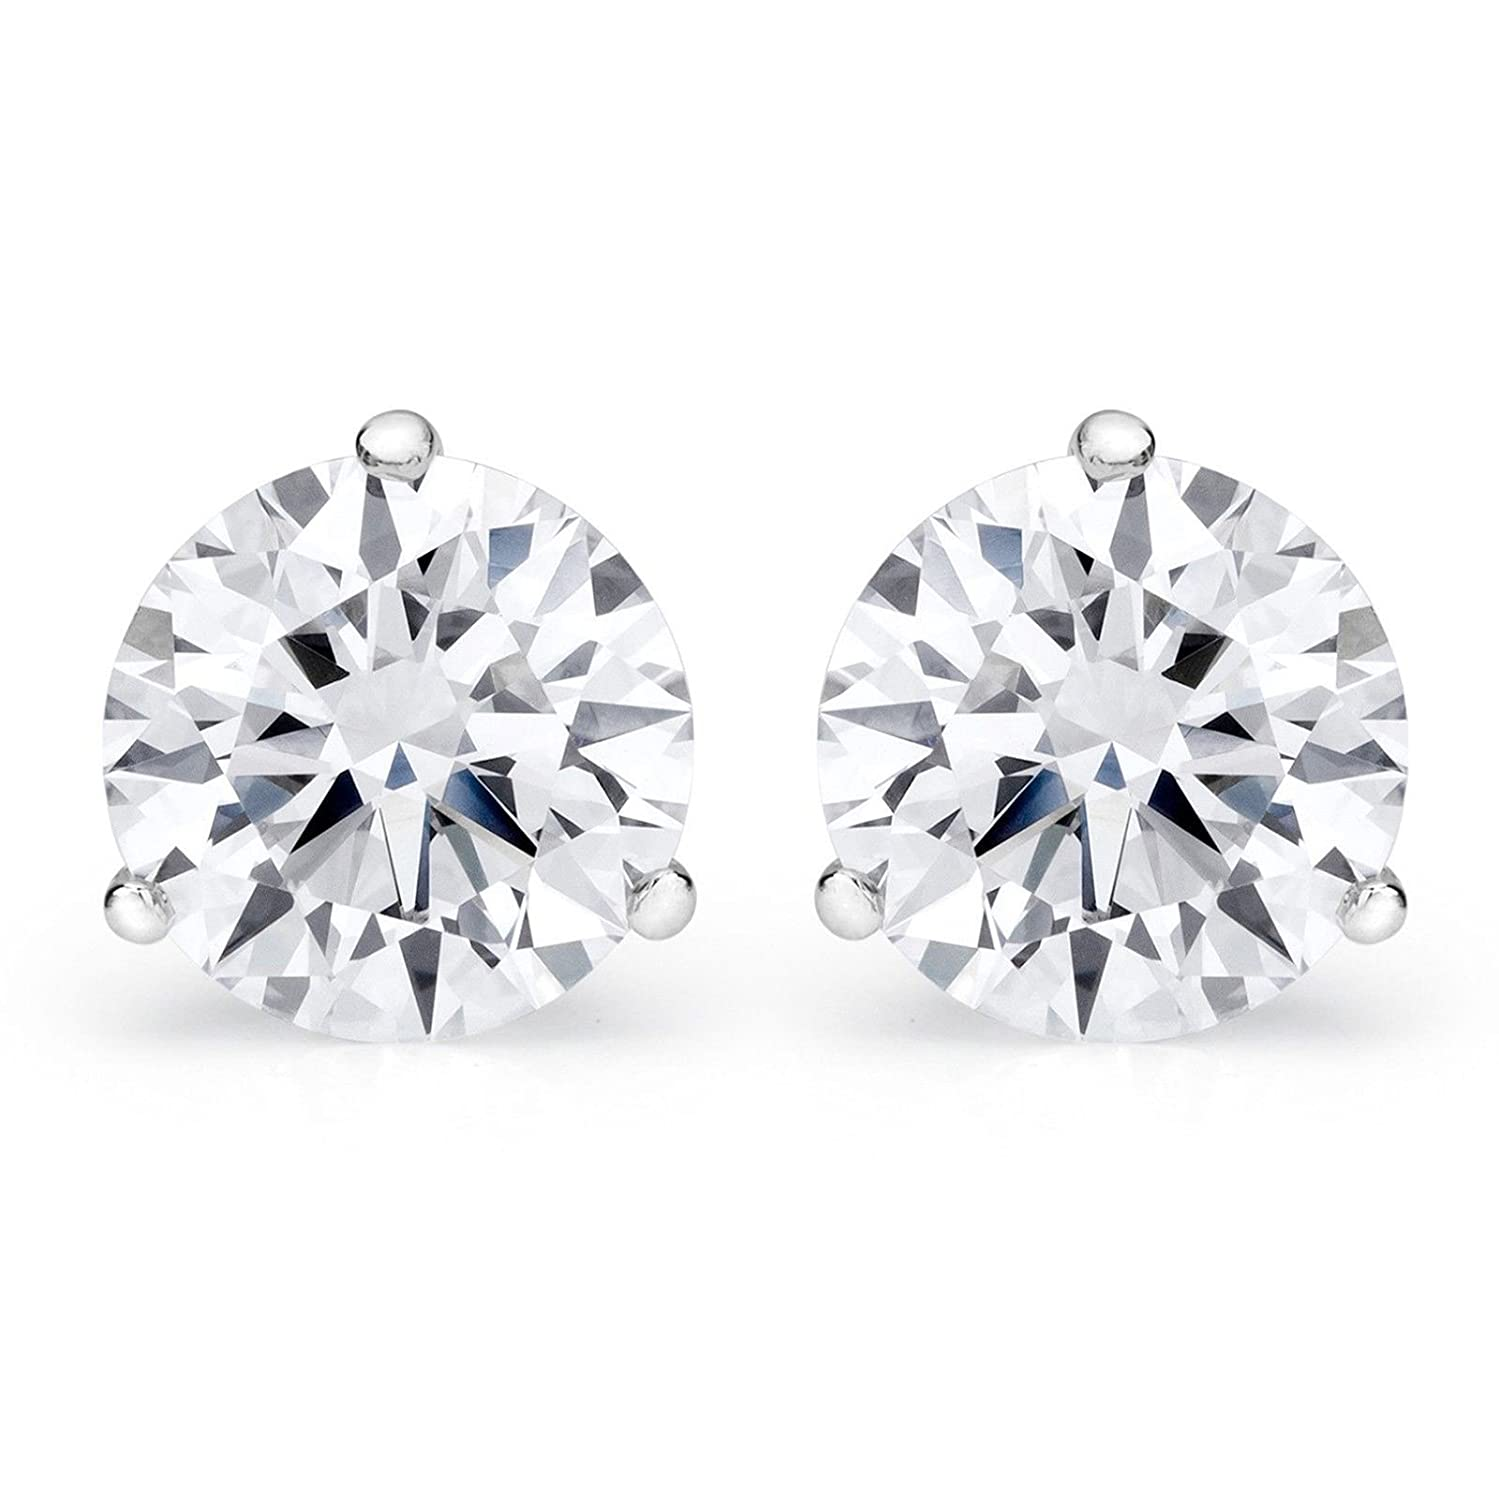 Clara Pucci 3.90 CT Round Cut Solitaire Martini Style Stud Earrings in 14k White Gold Screw Back